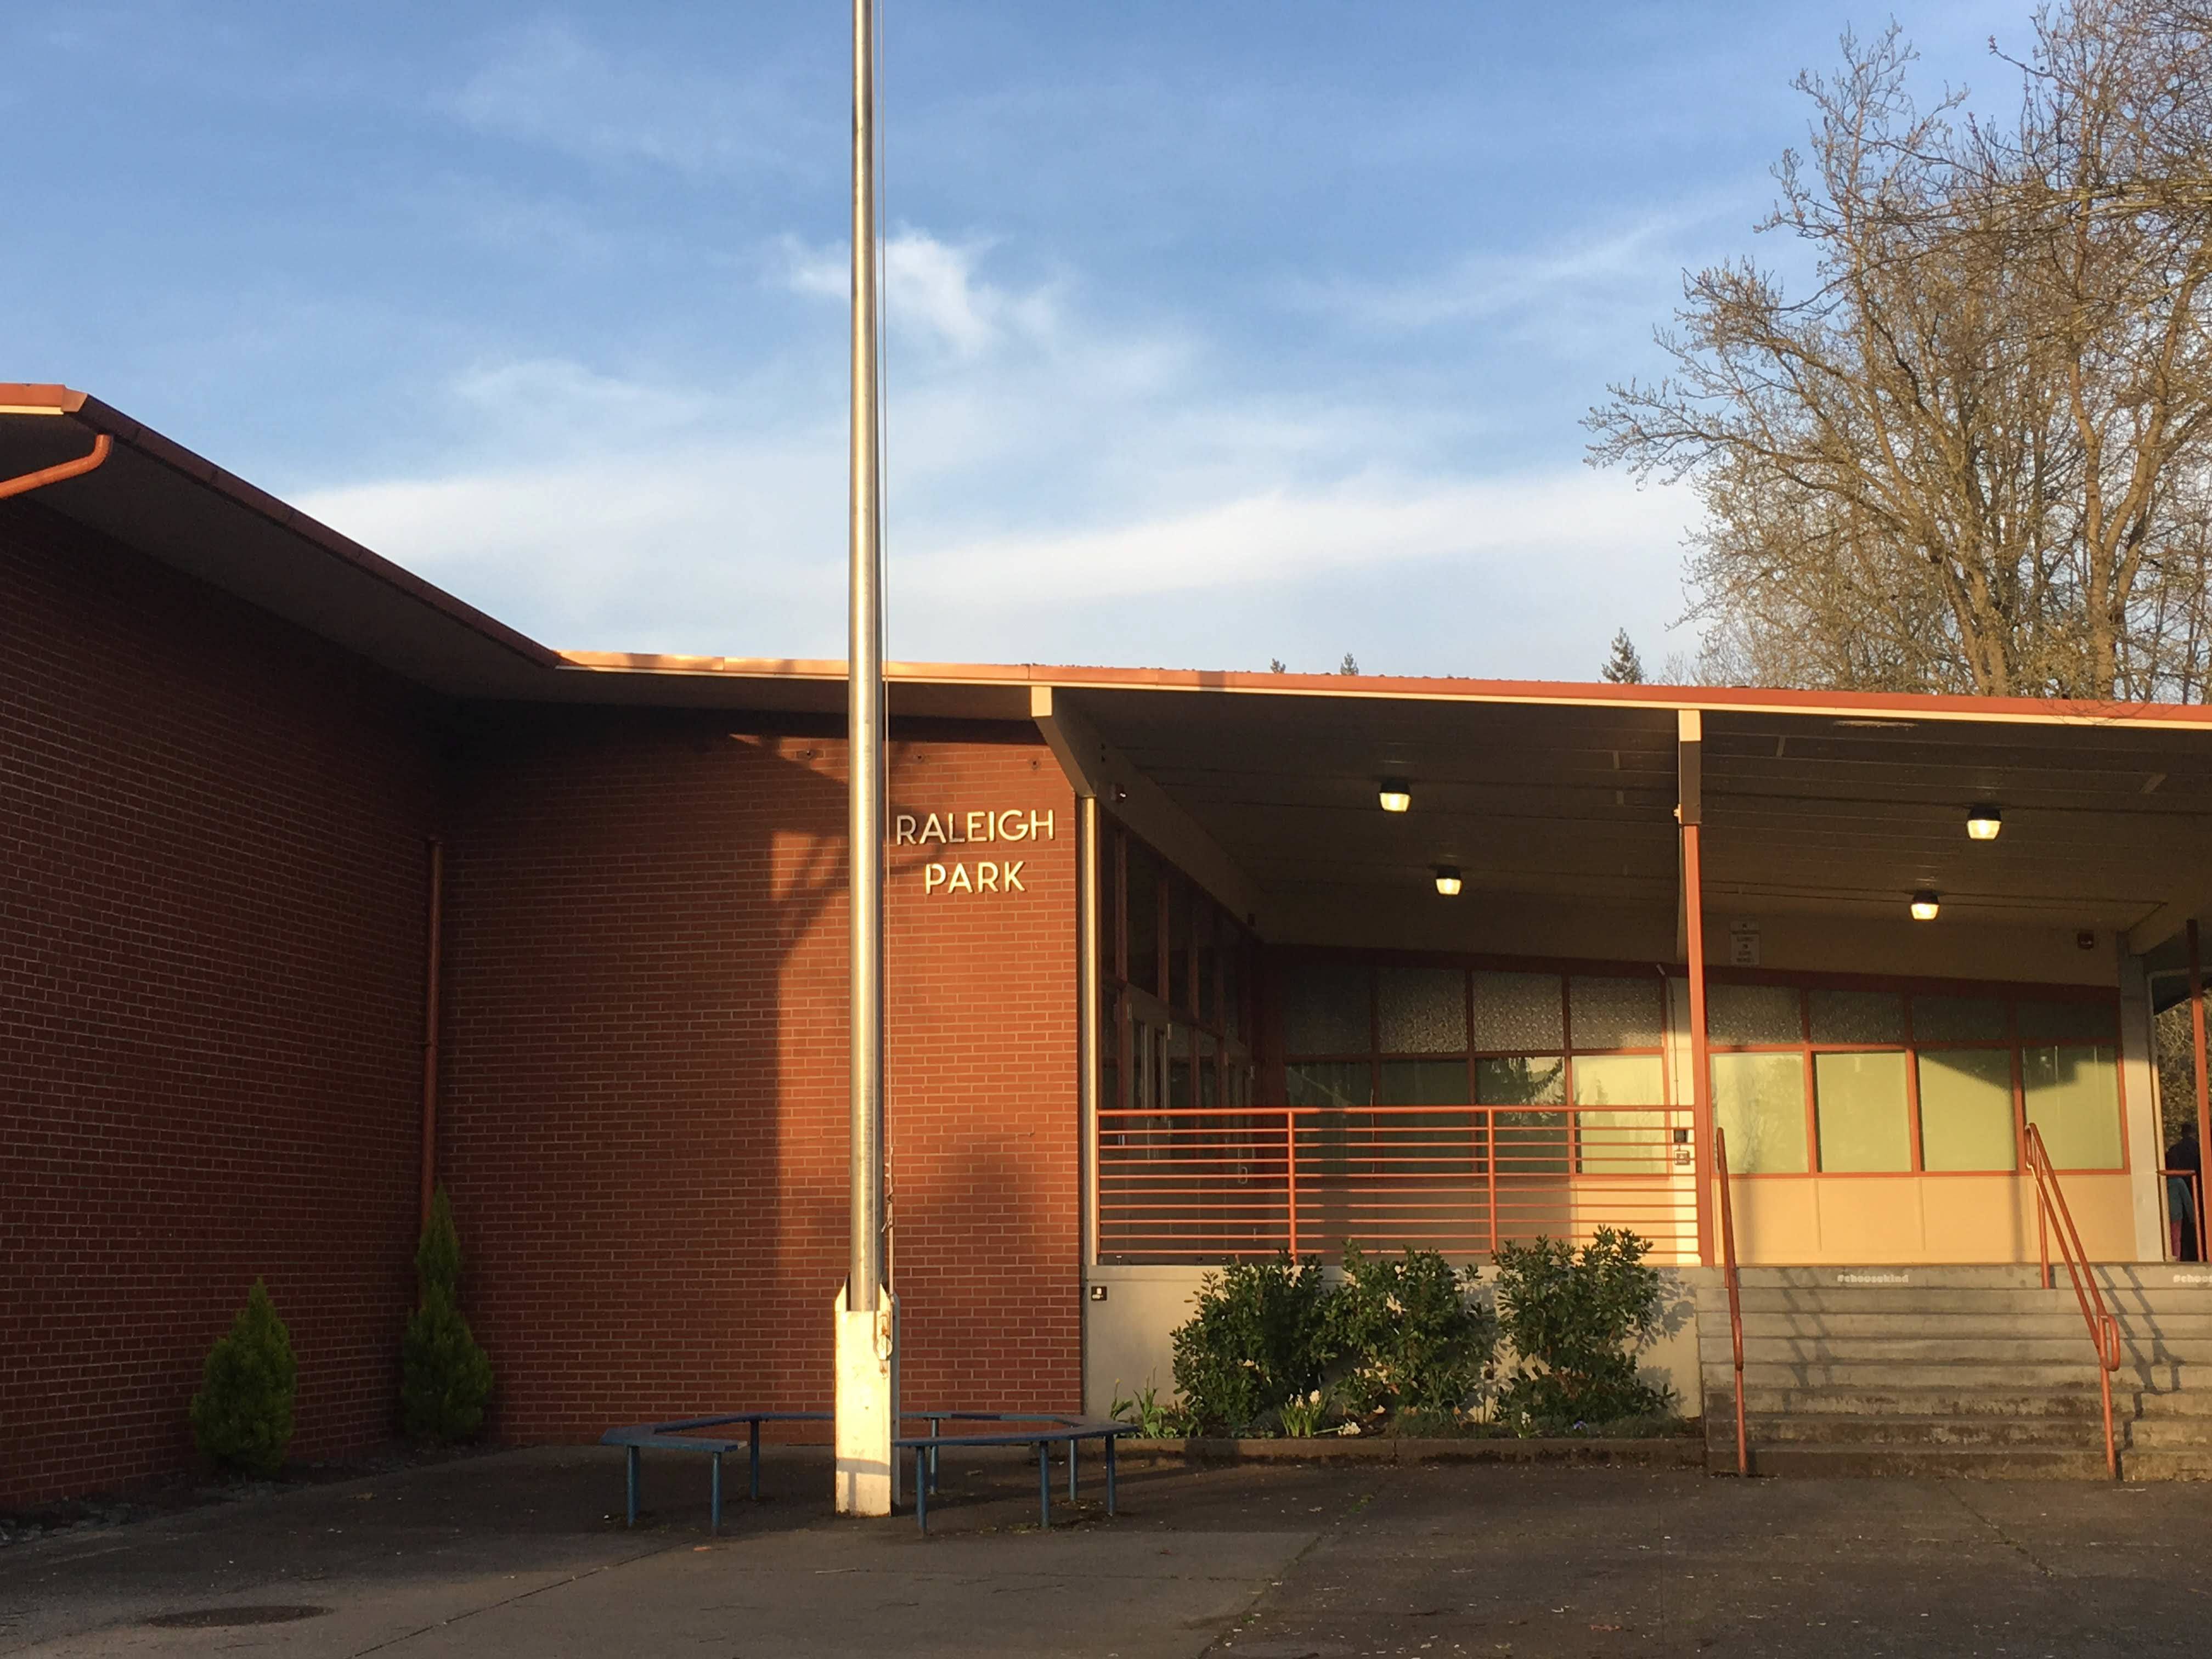 Raleigh Park Elementary School (Portland, Oregon) Homes for Sale